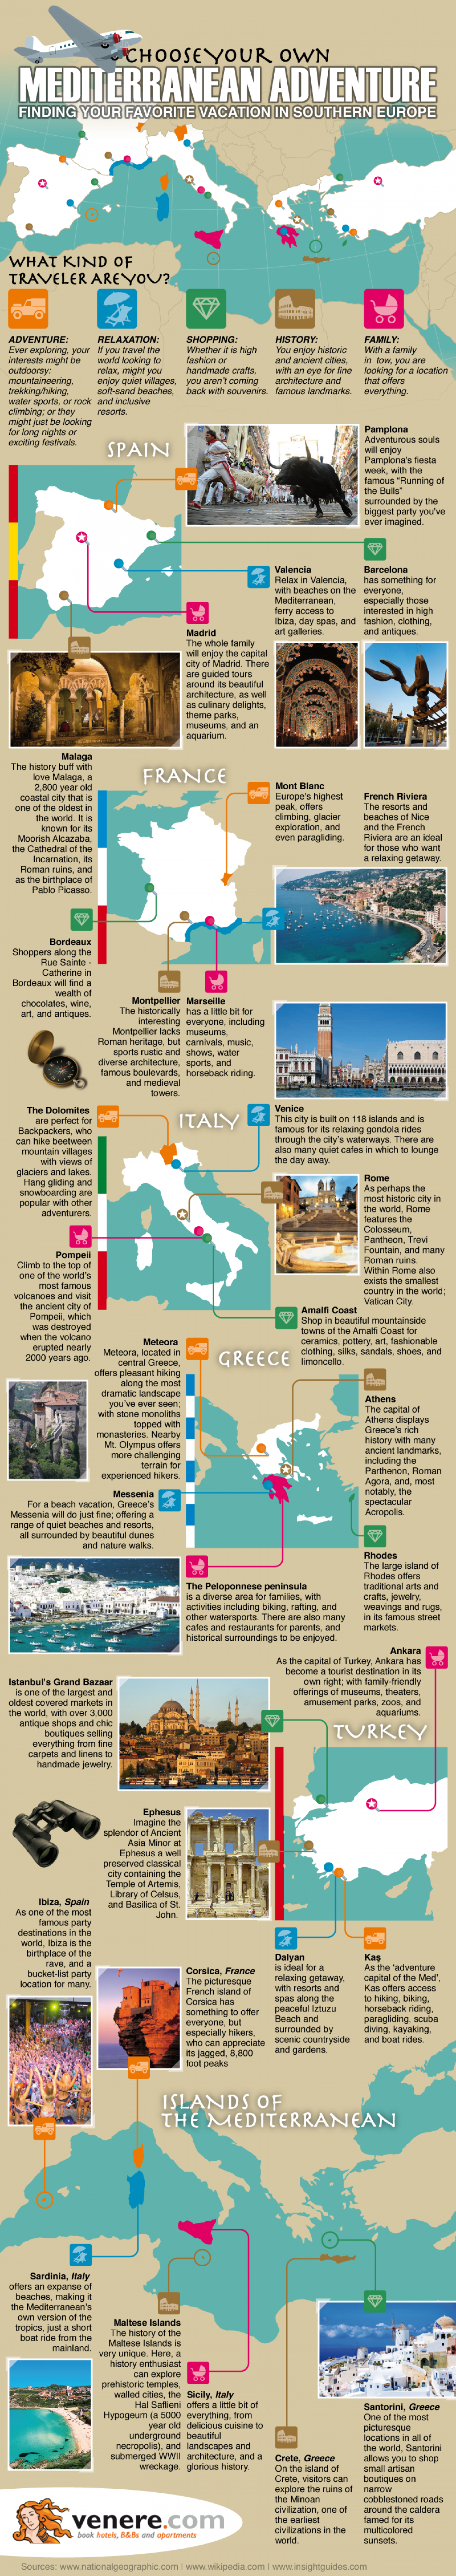 Choose Your Own Mediterranean Adventure Infographic